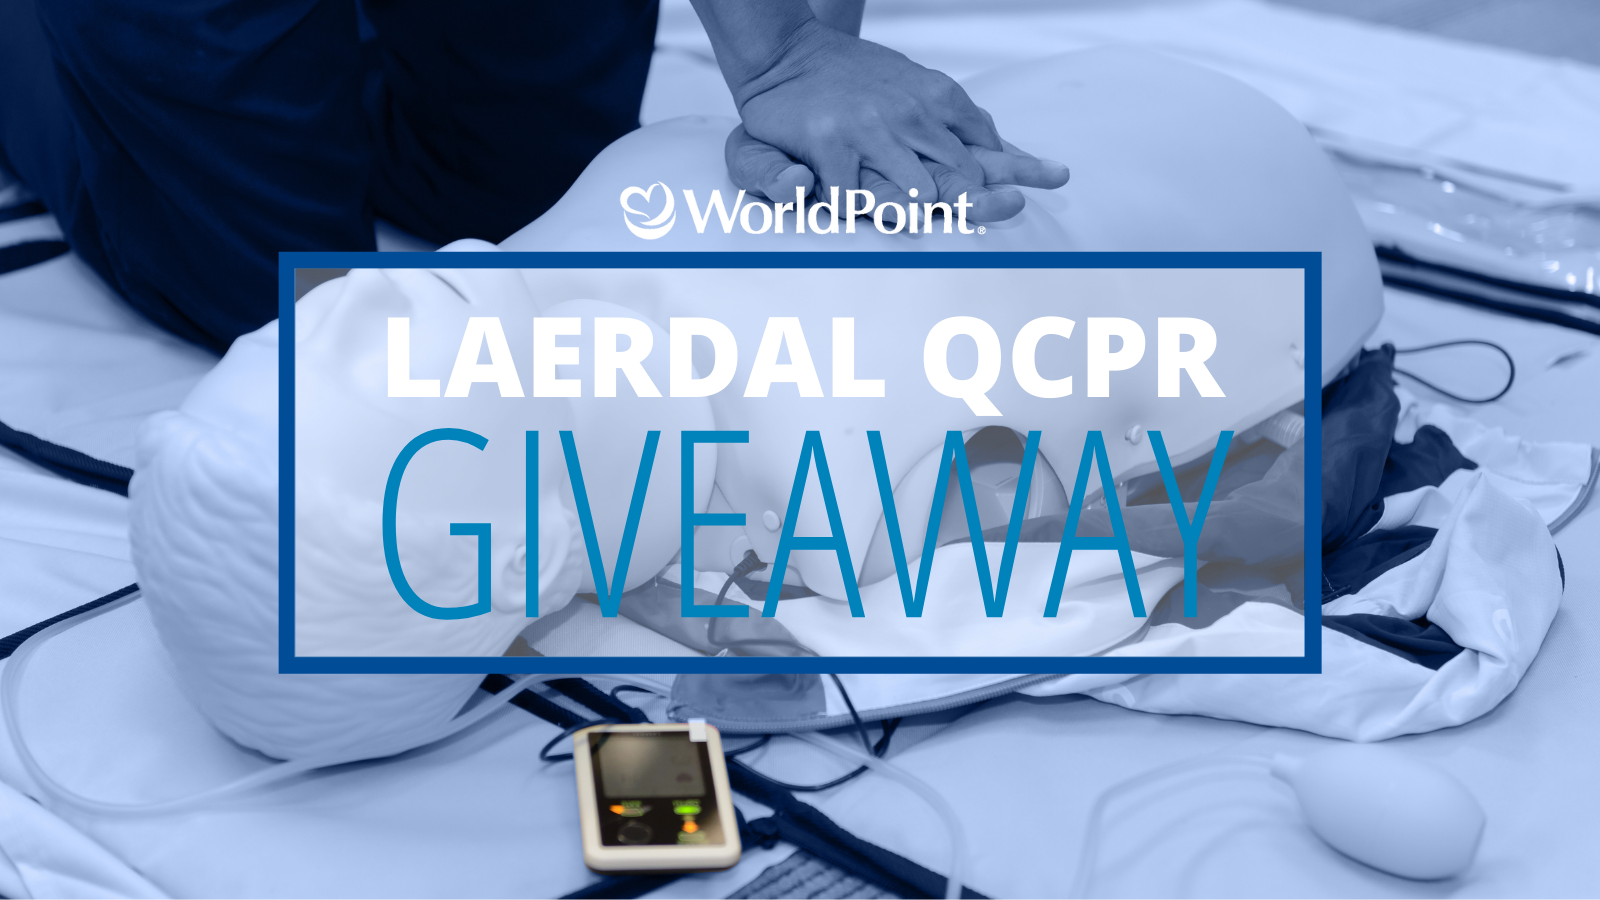 Laerdal QCPR Giveaway: Enter to WIN!